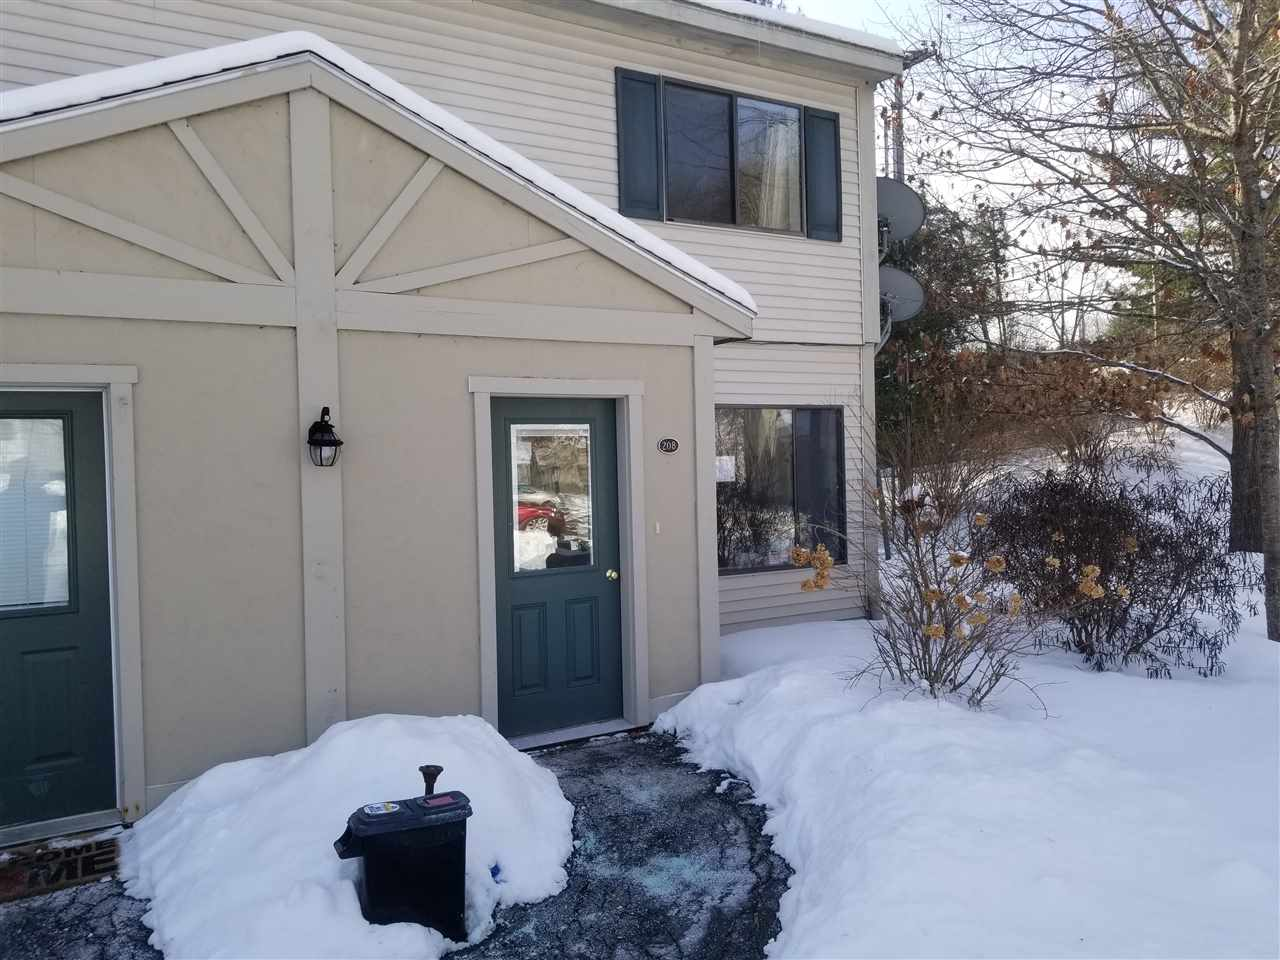 Village of Wilder in Town of Hartford VT  05001 Condo for sale $List Price is $139,000